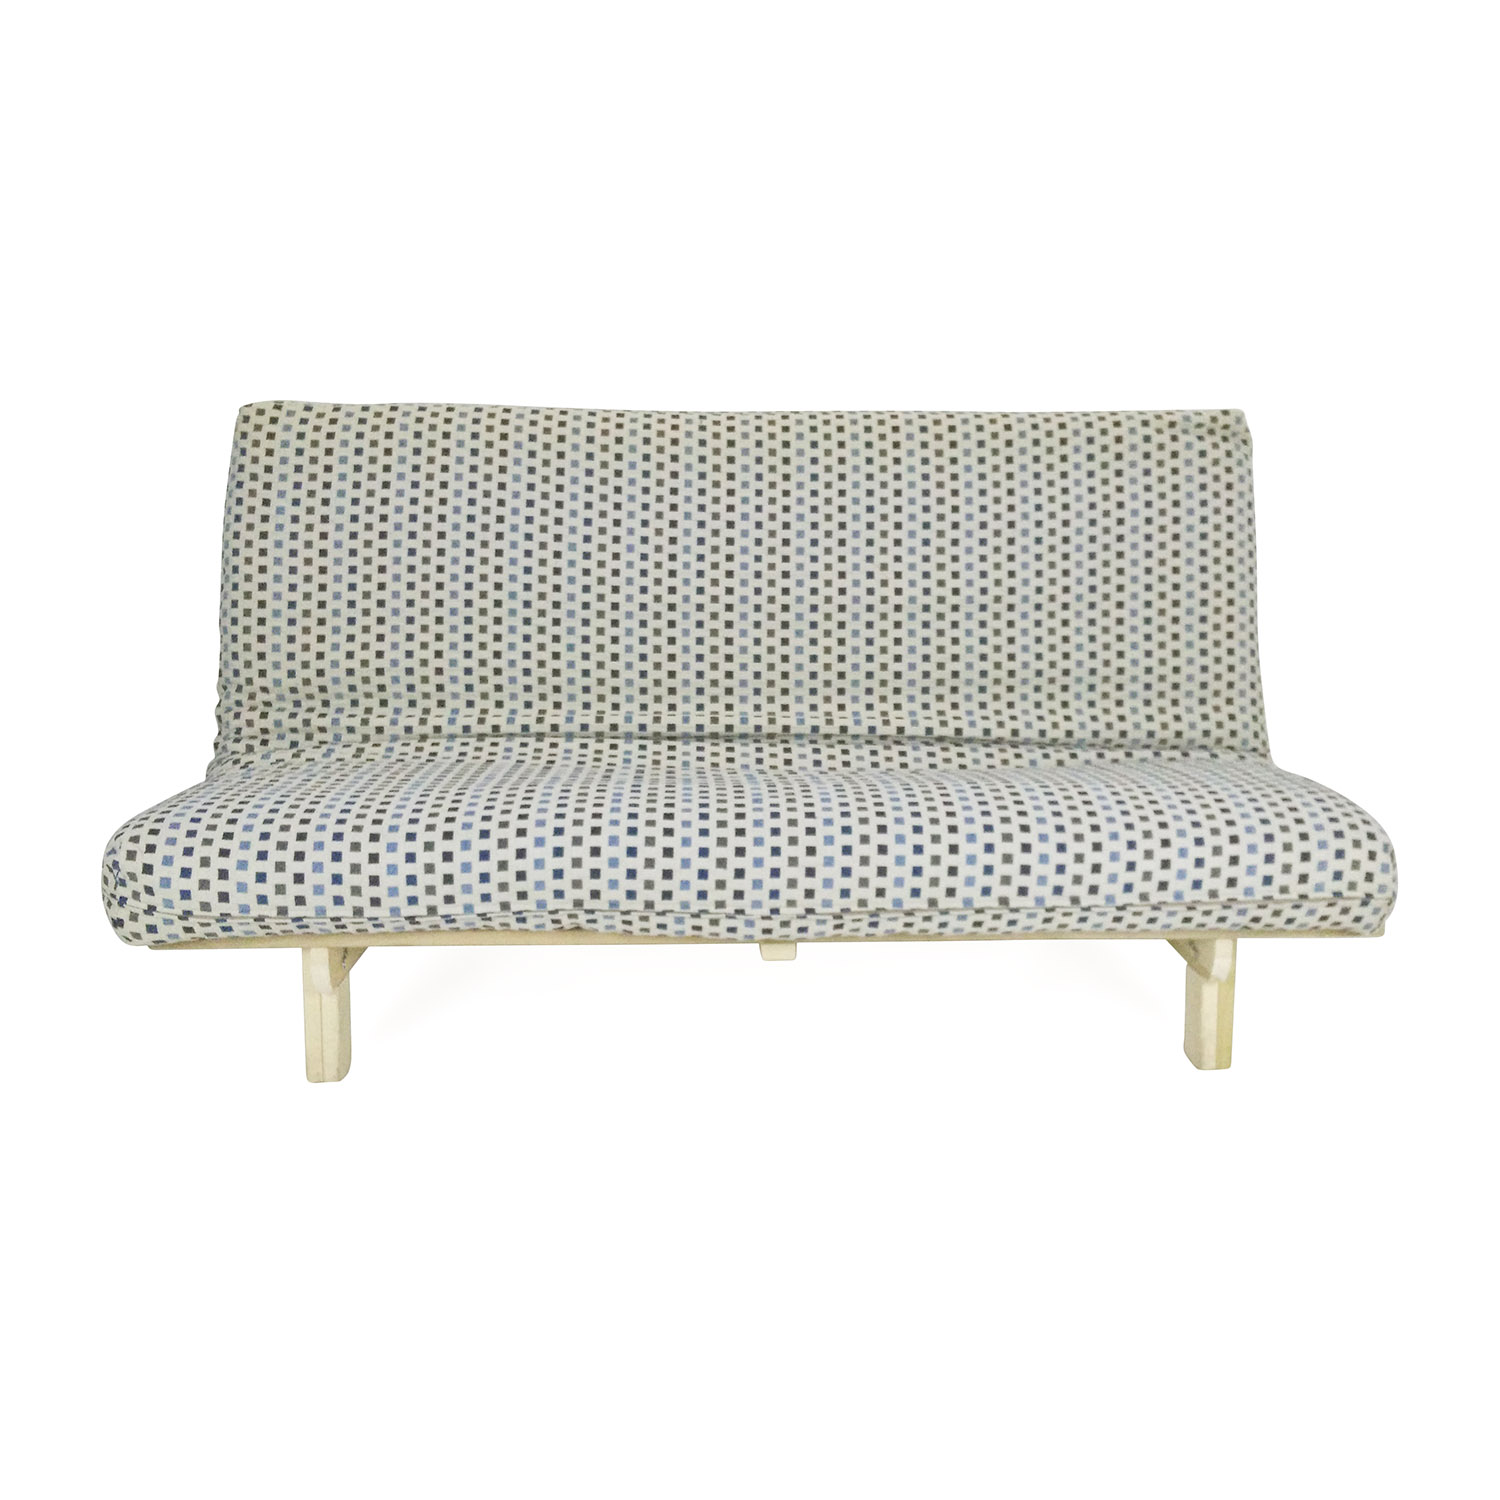 Comfy Futon Couch Sofas. lease recliners and accent chairs new york shop